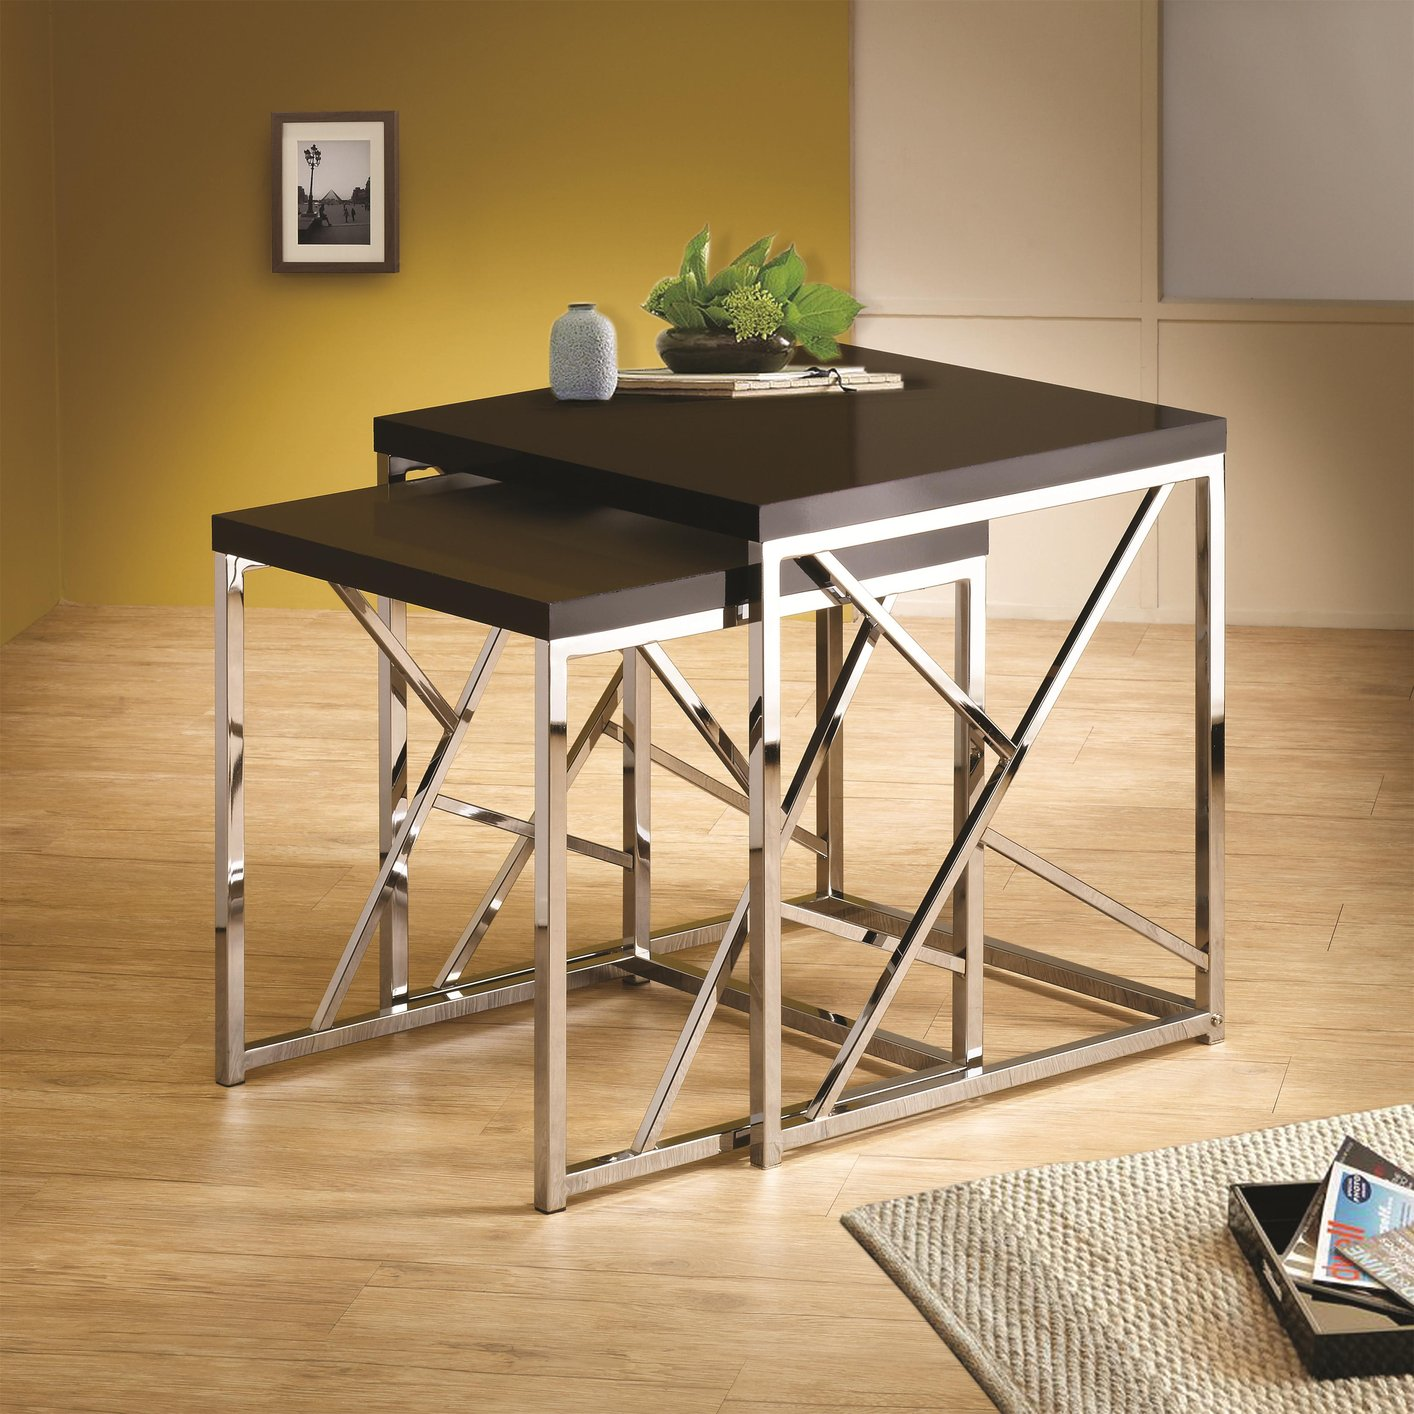 Black Metal Nesting Tables Silver Metal Nesting Table Steal A Sofa Furniture Outlet